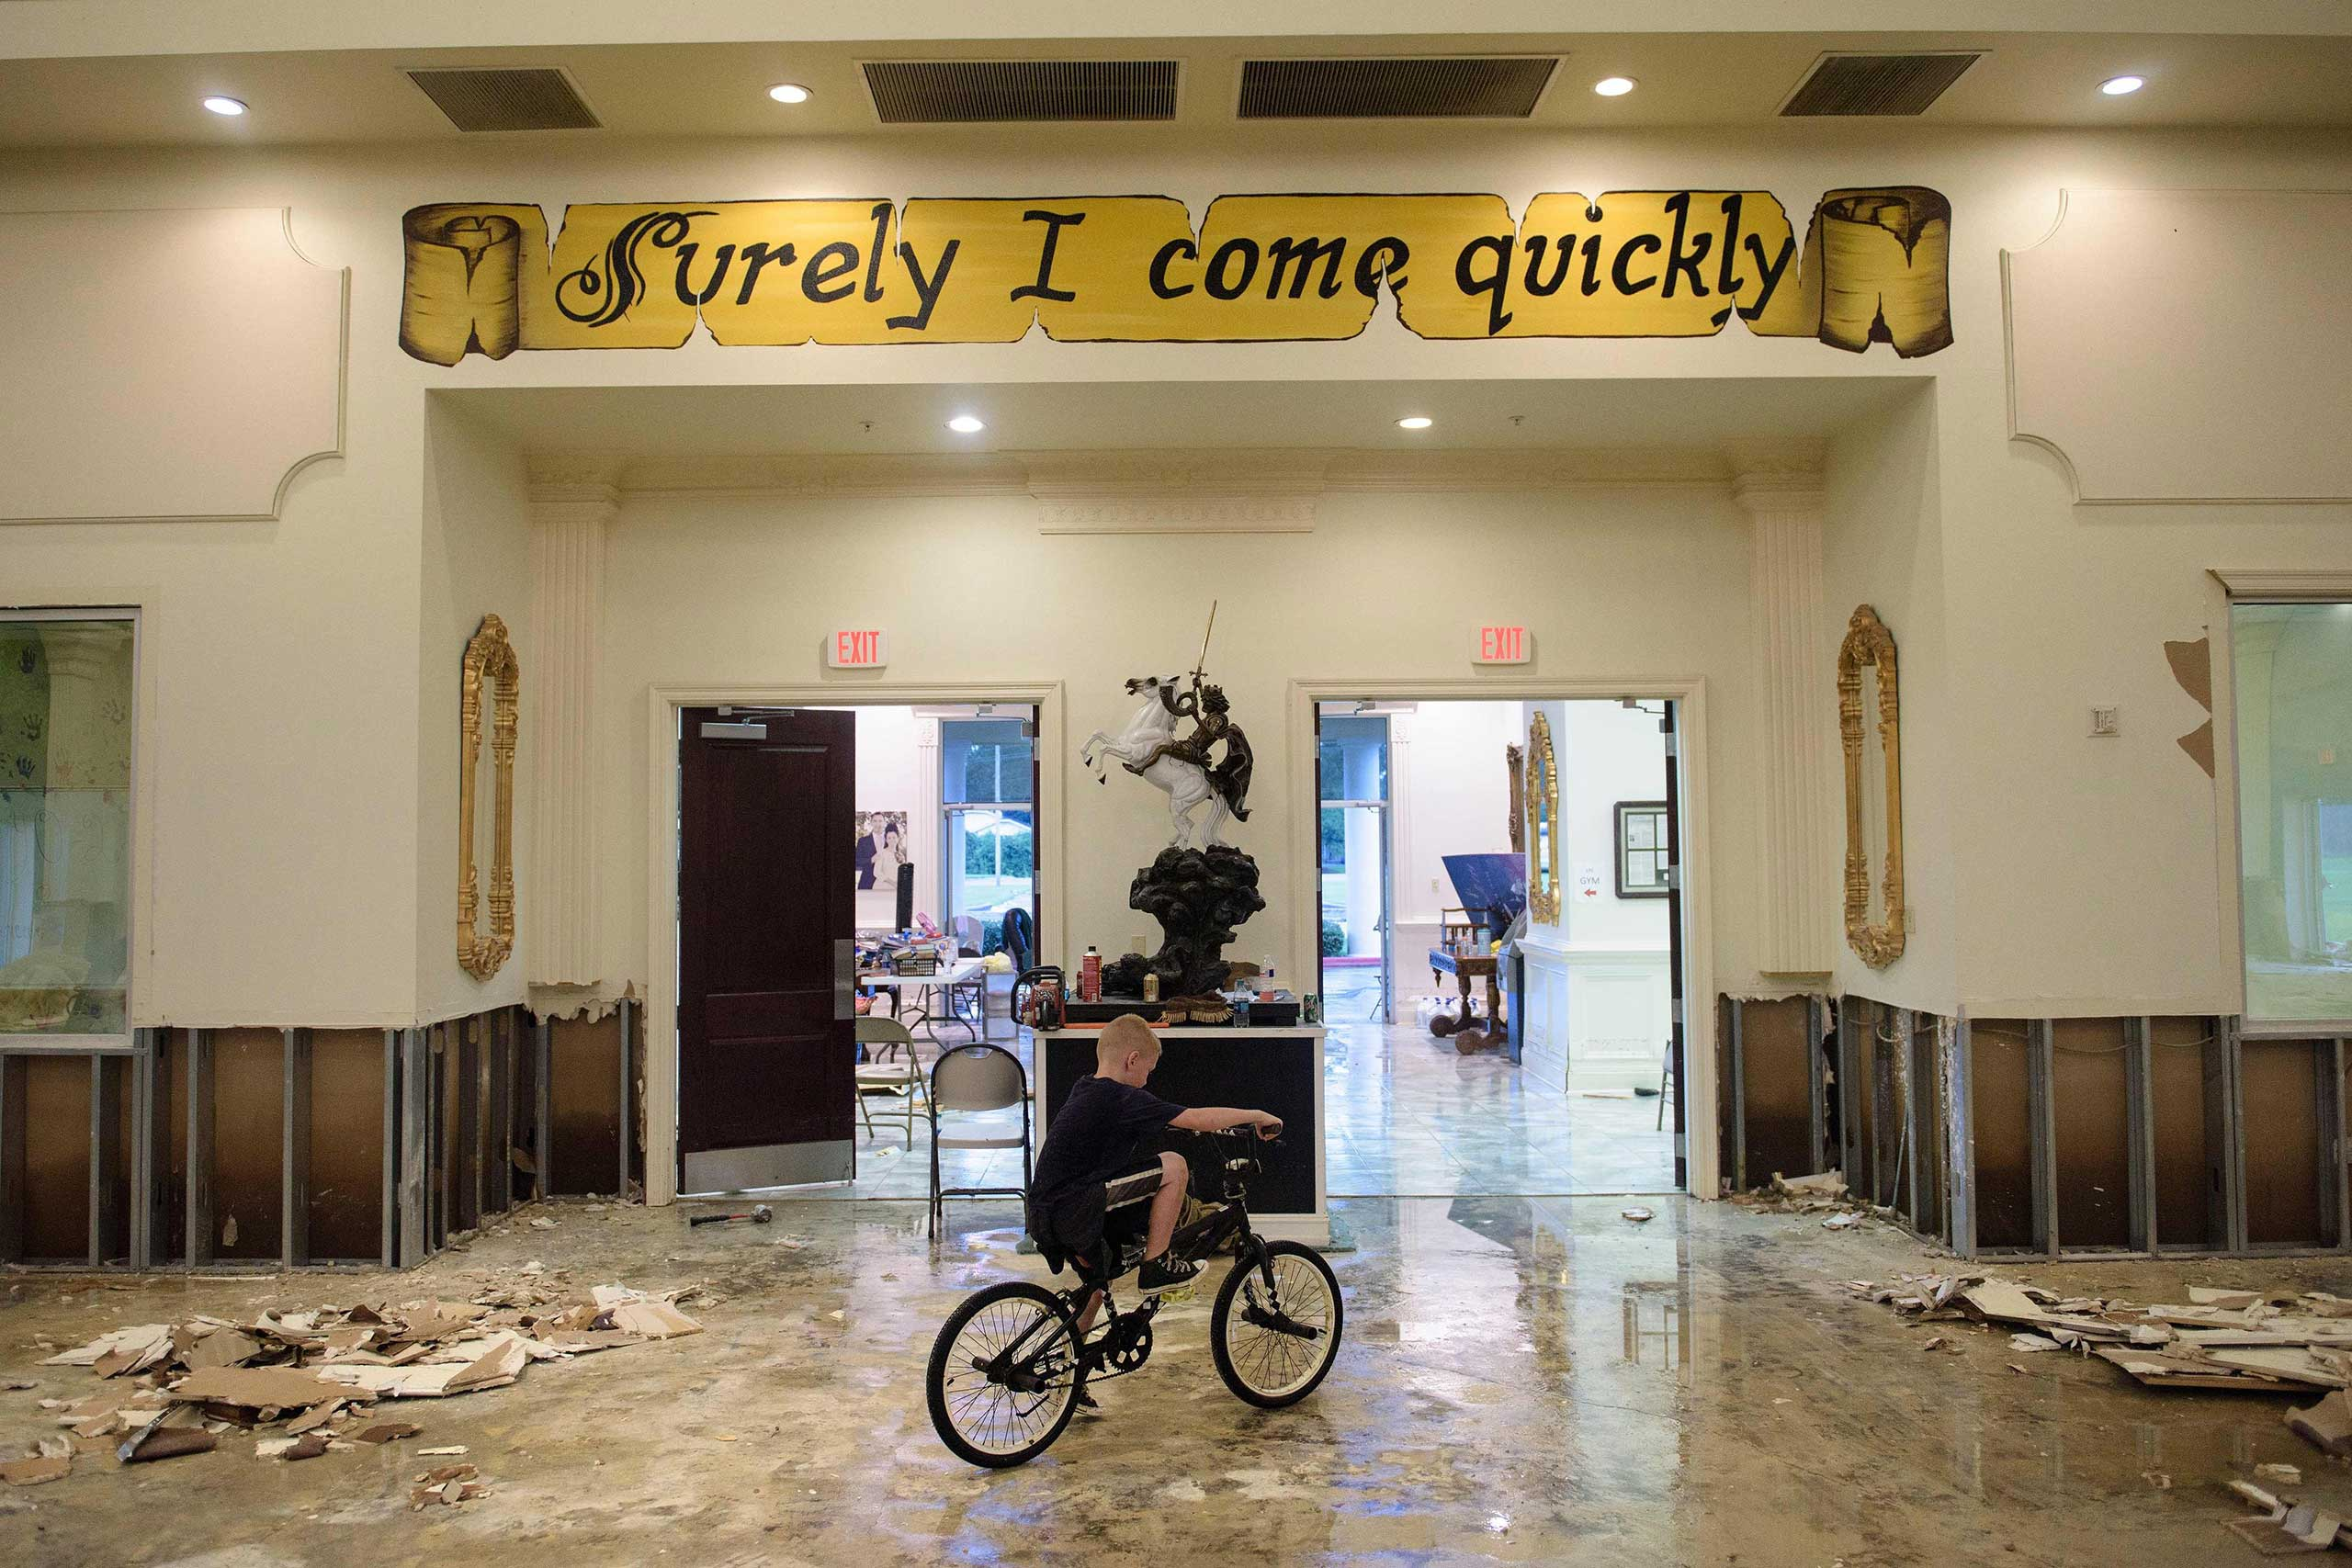 A boy rides his bike inside the flood-damaged Life Tabernacle Church in Baton Rouge, La., on Aug. 15, 2016.